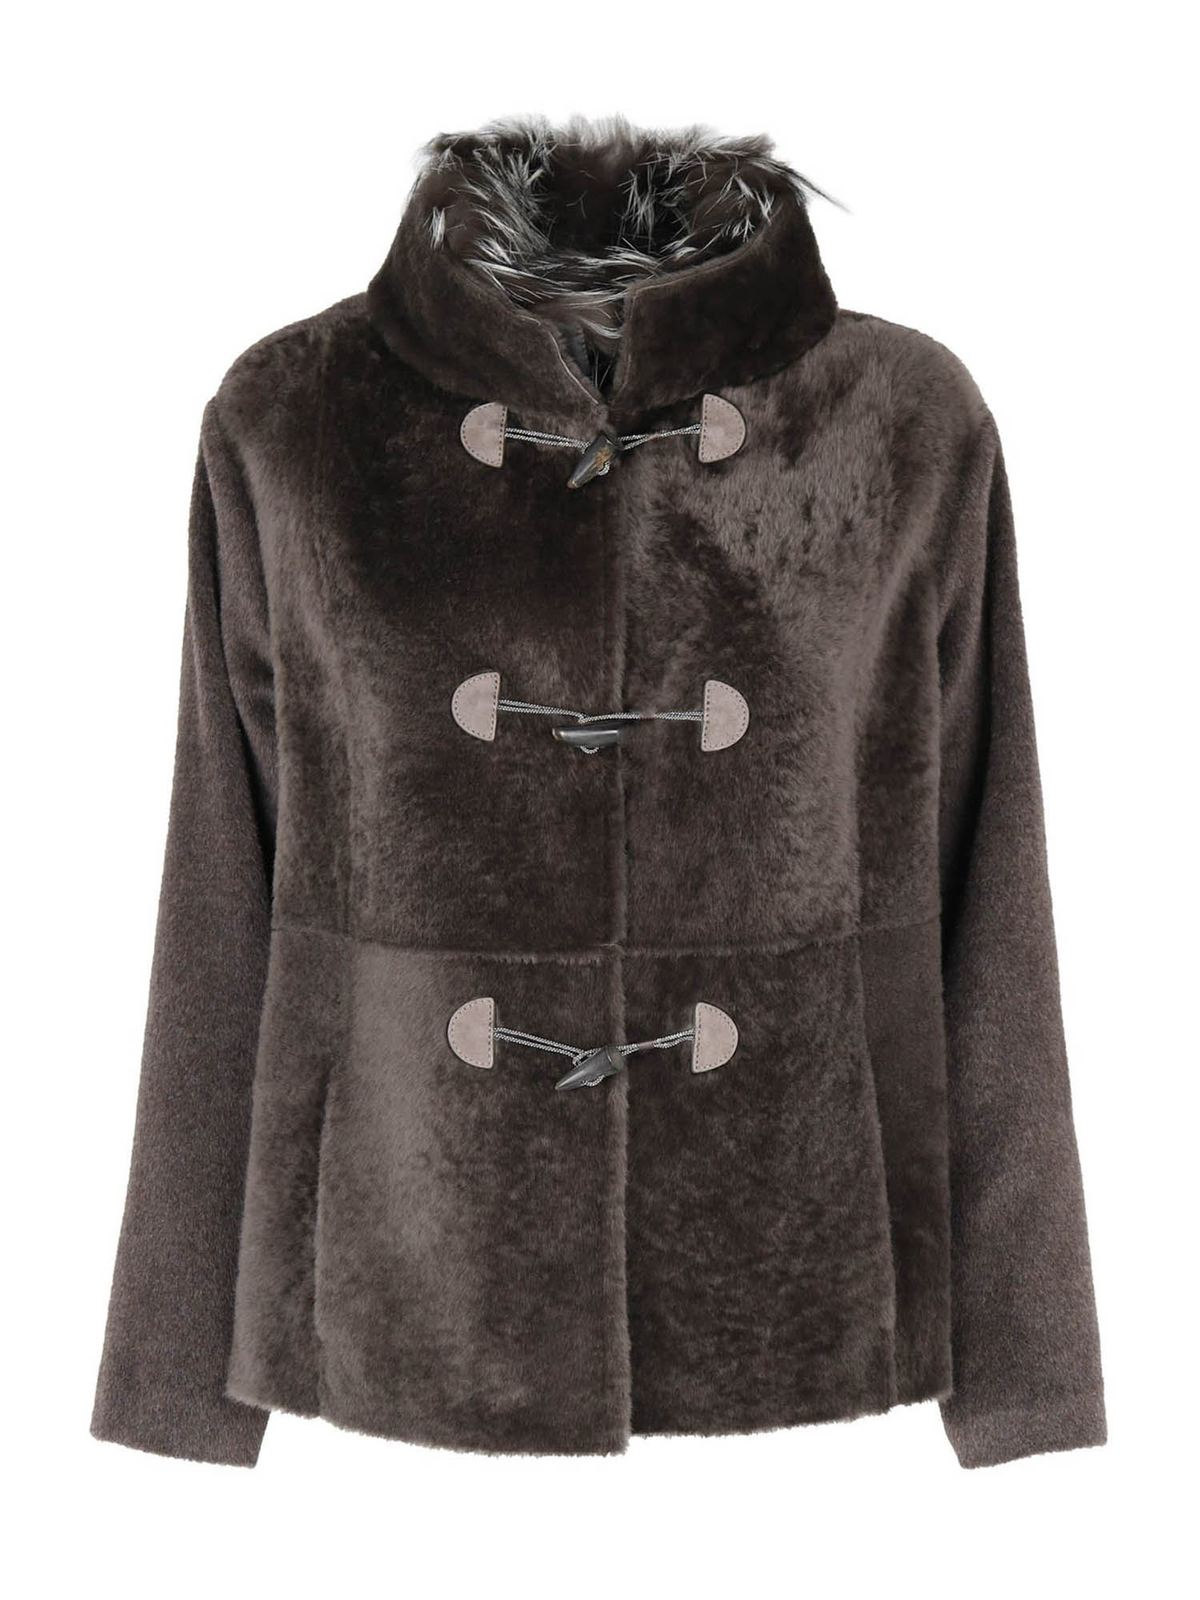 Fabiana Filippi SHEARLING COAT IN BROWN